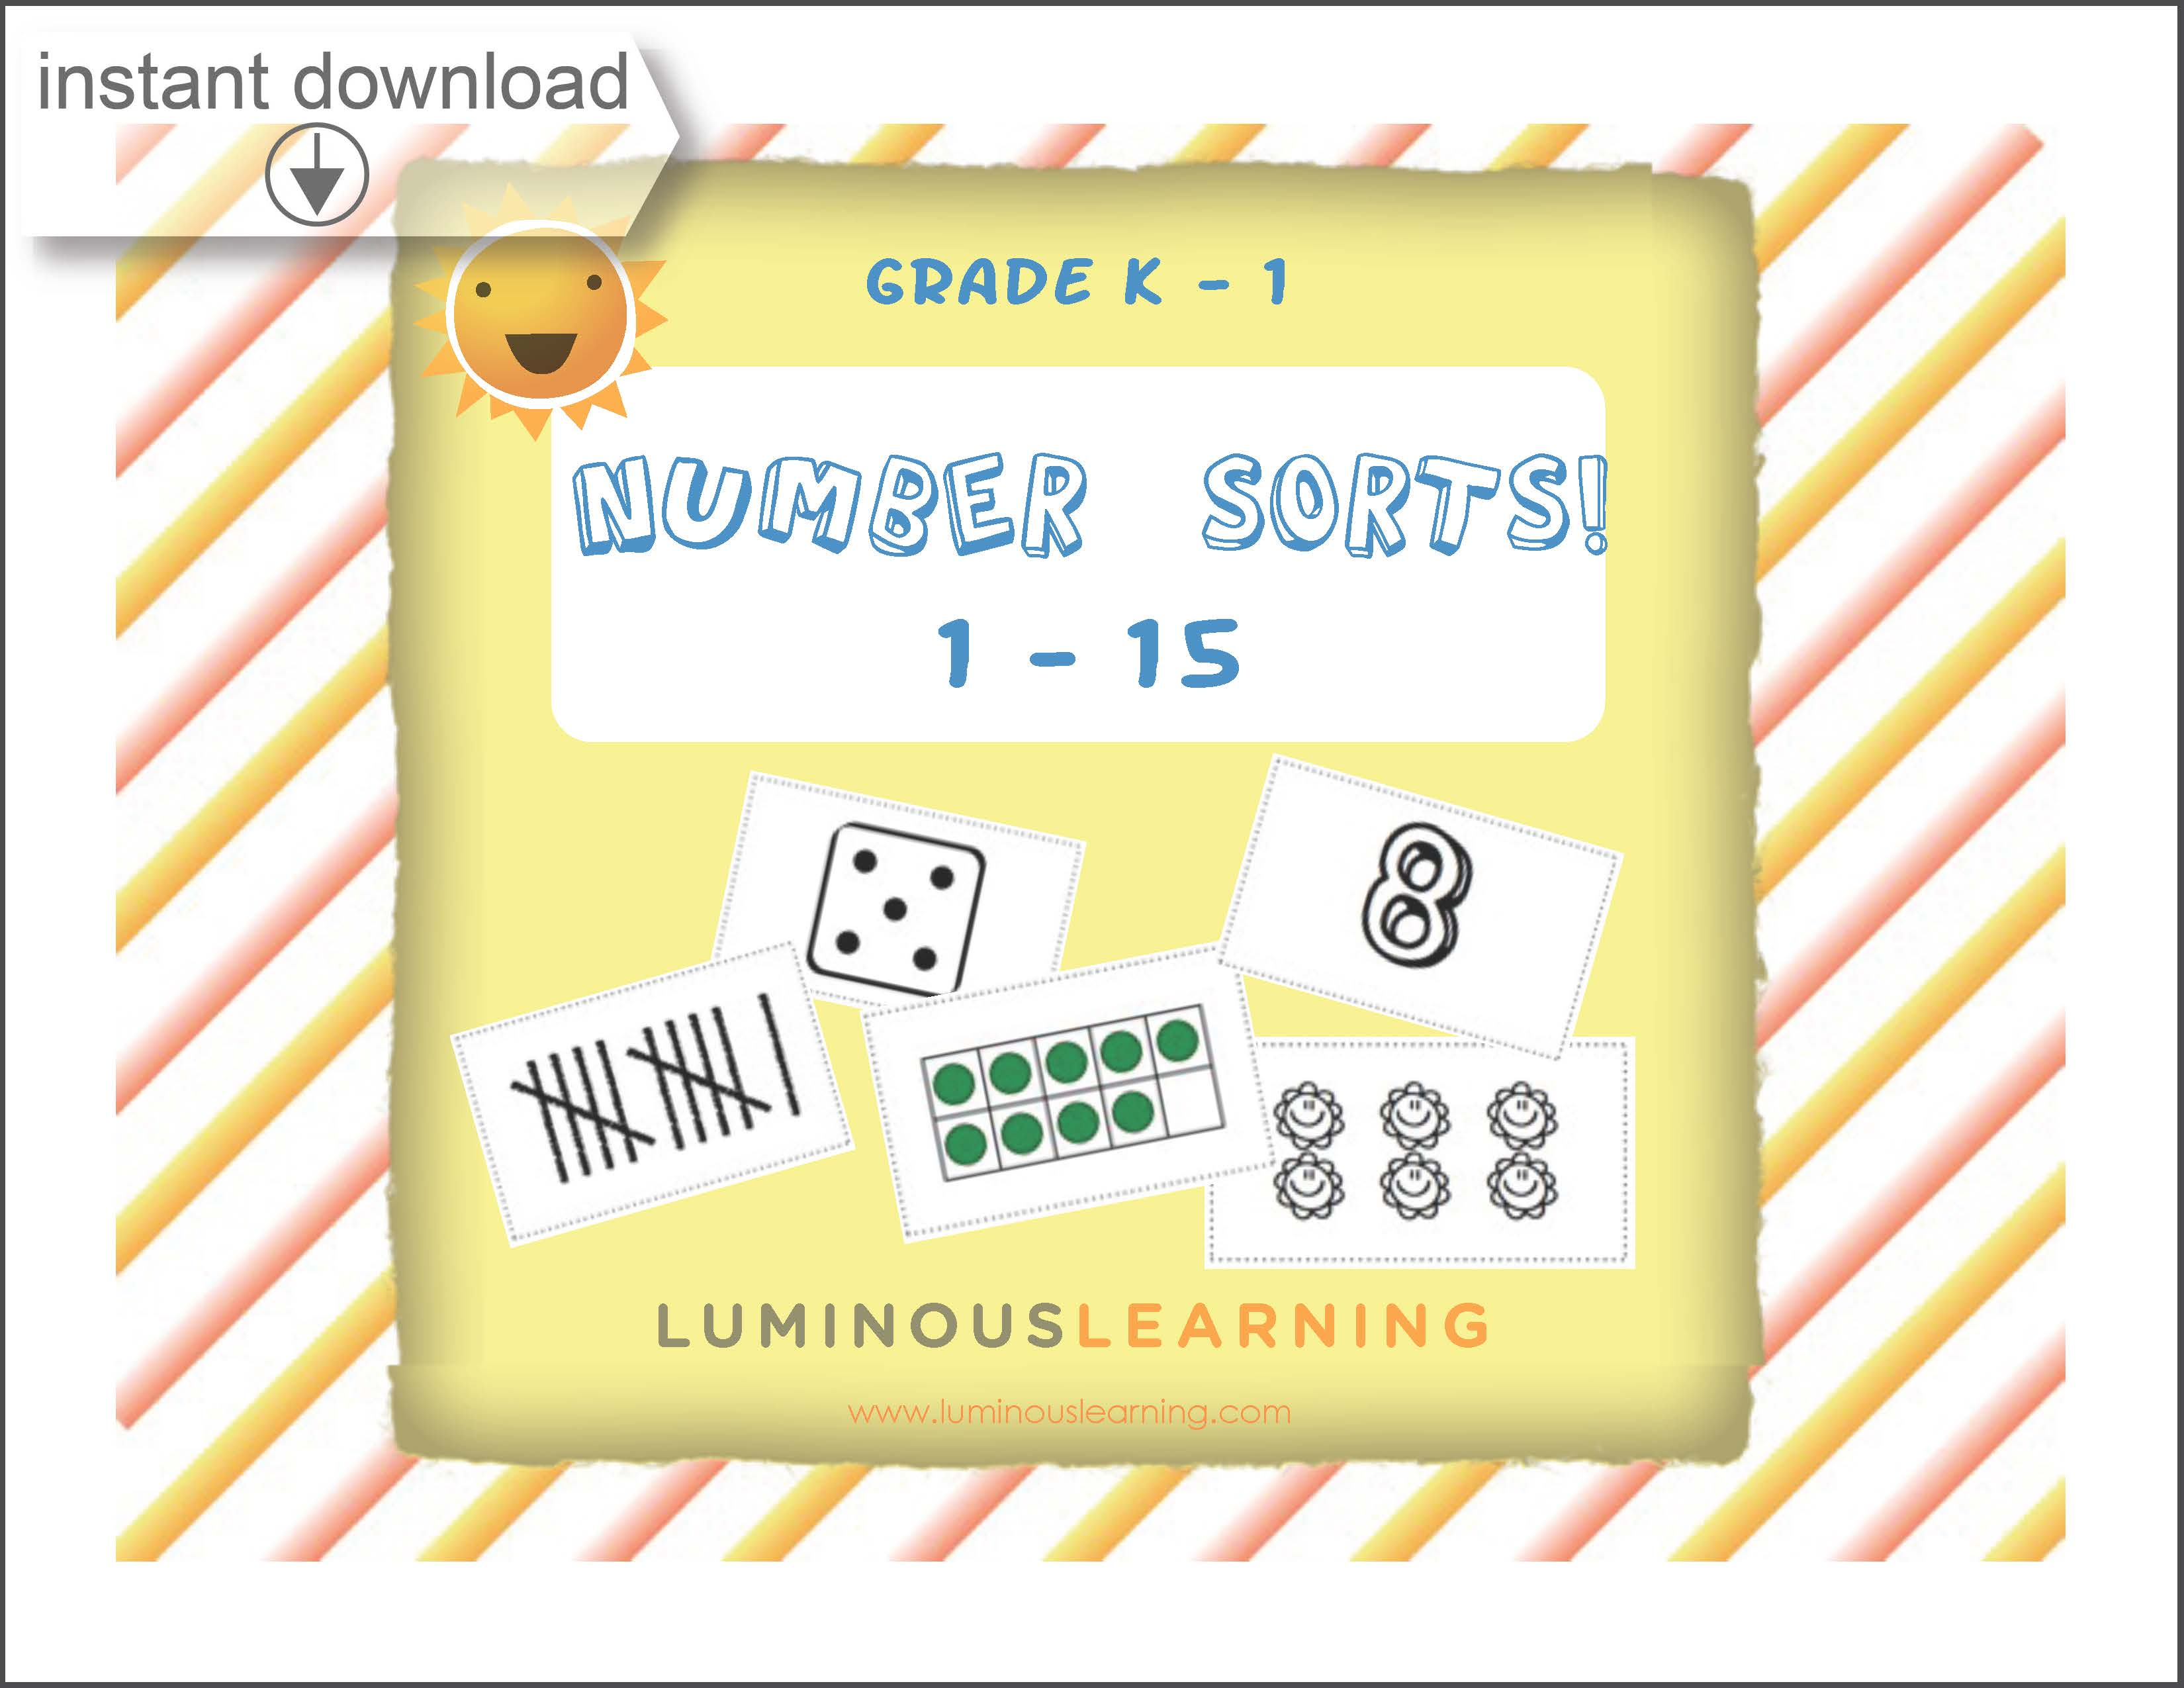 graphic about Printable Activity Books named Grades K - 1 Quantity Sorting: Printable Recreation Reserve